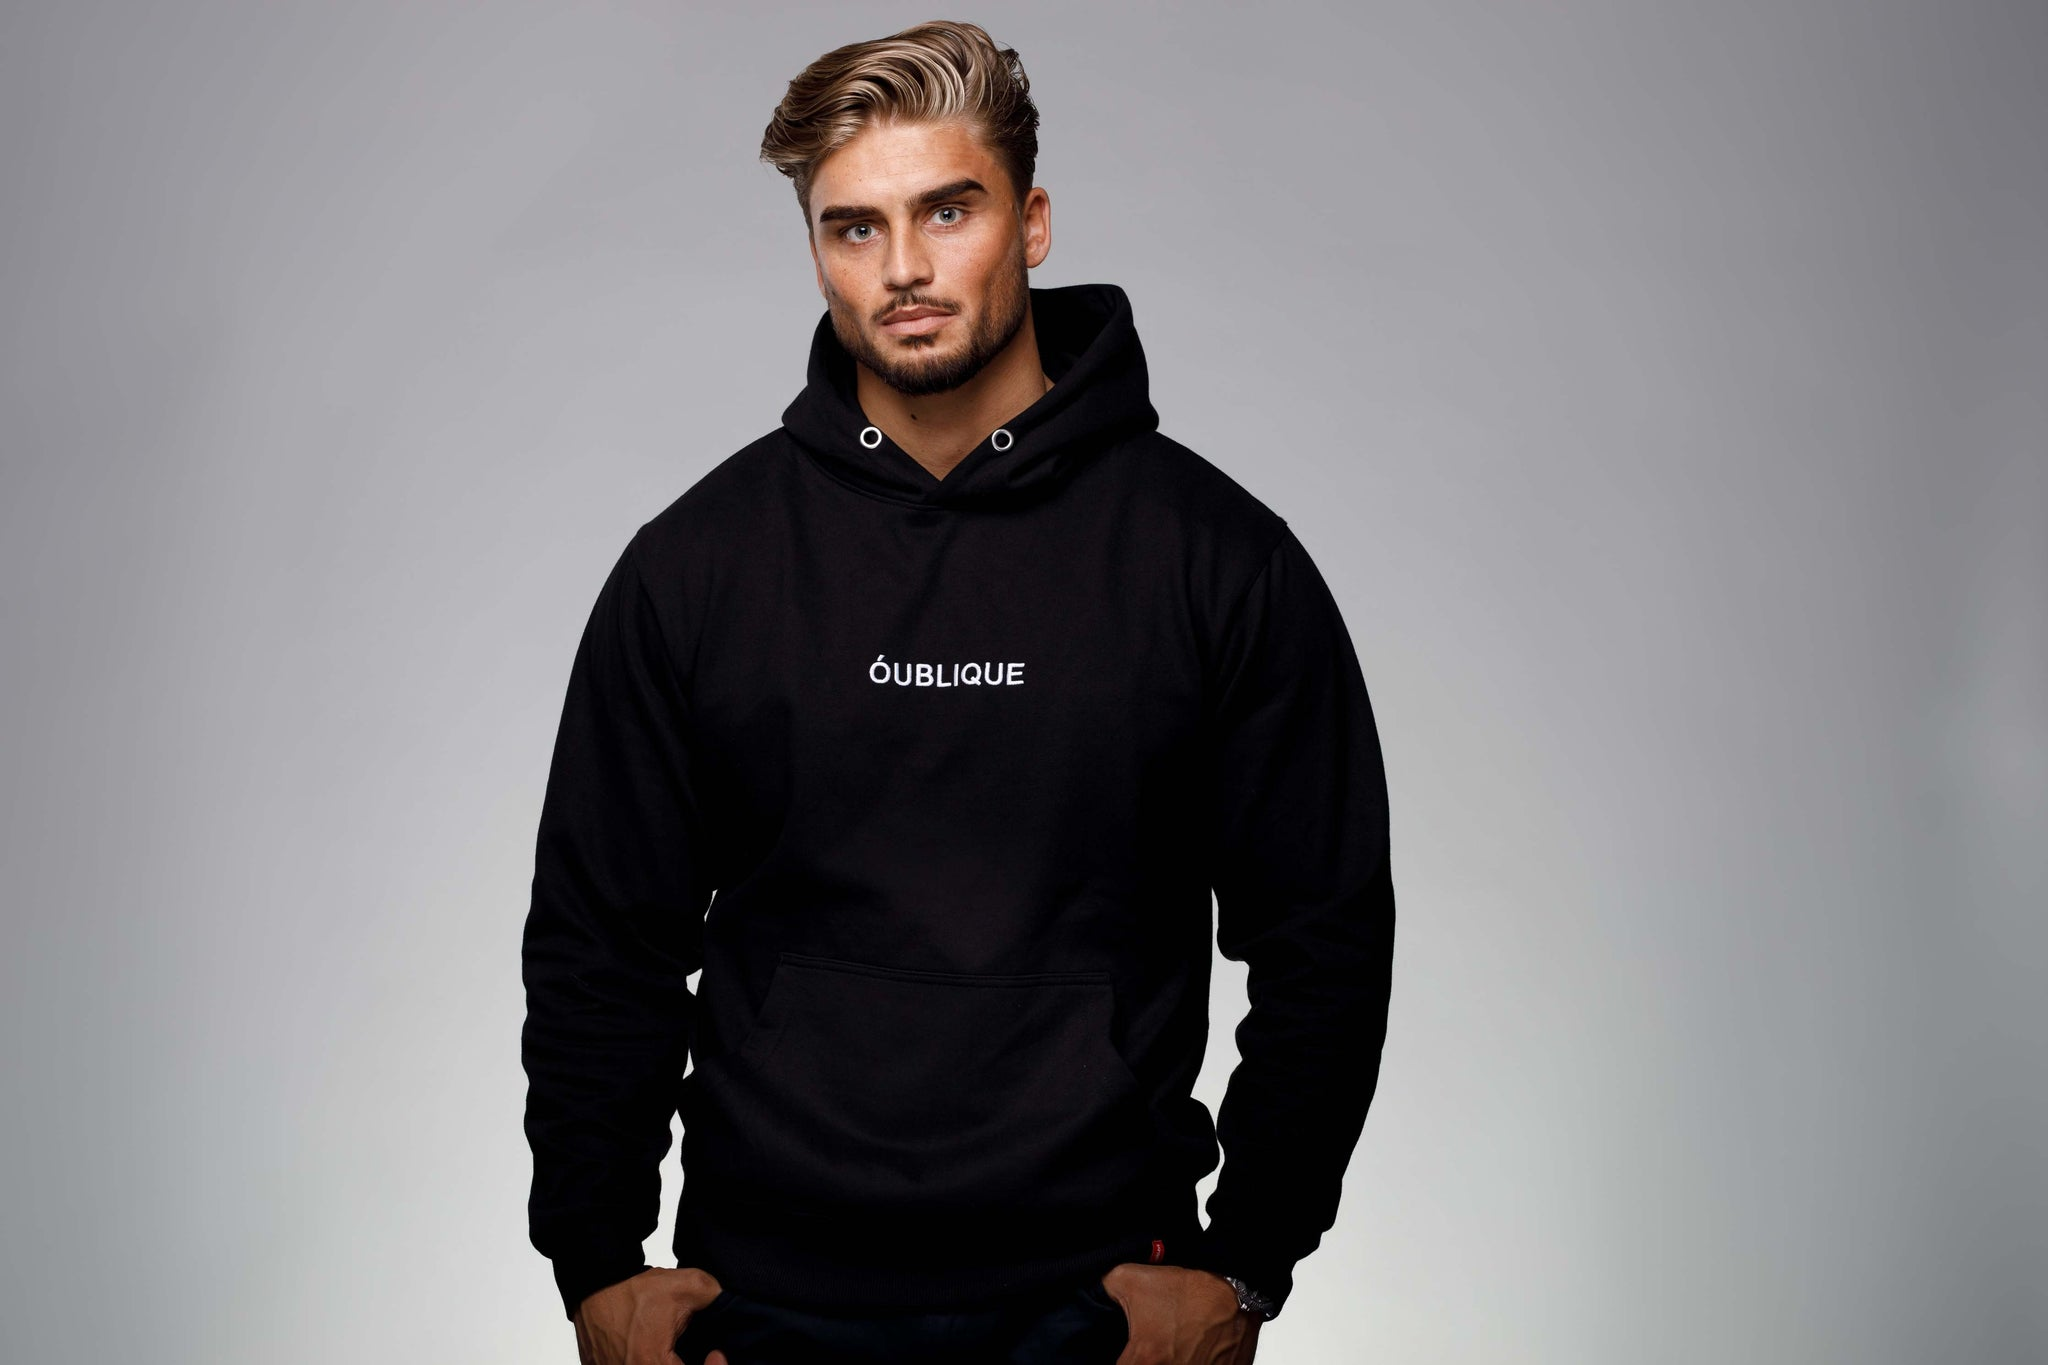 EMBROIDED ÓUBLIQUE HOODY